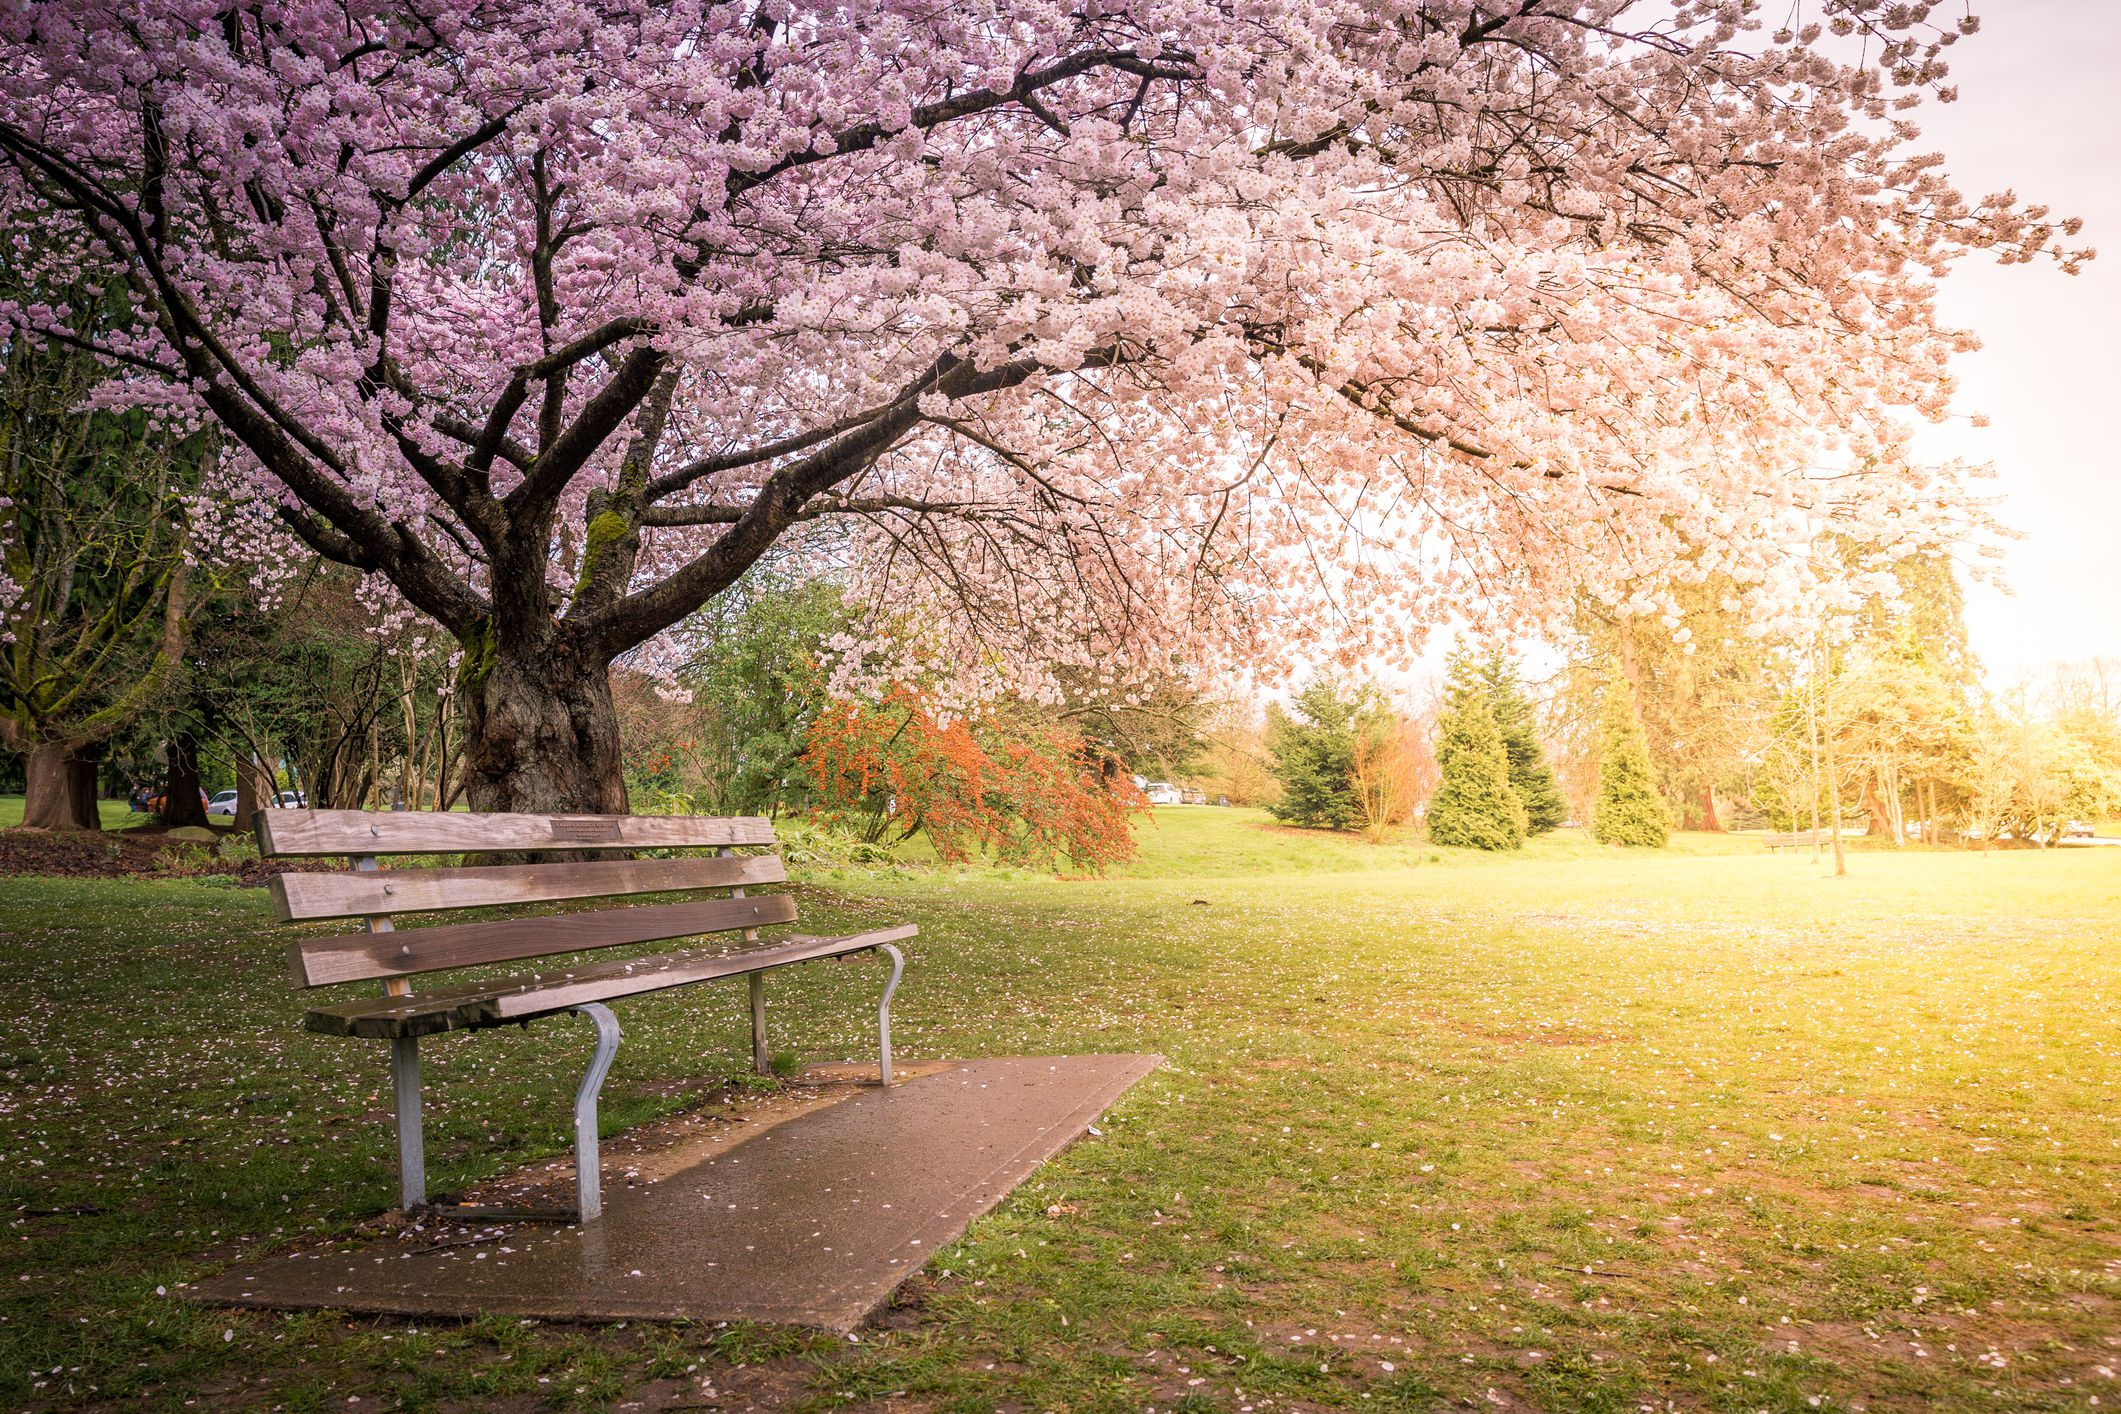 A park bench sits beneath a cherry tree in full bloom in Queen Elizabeth Park in Vancouver, Canada